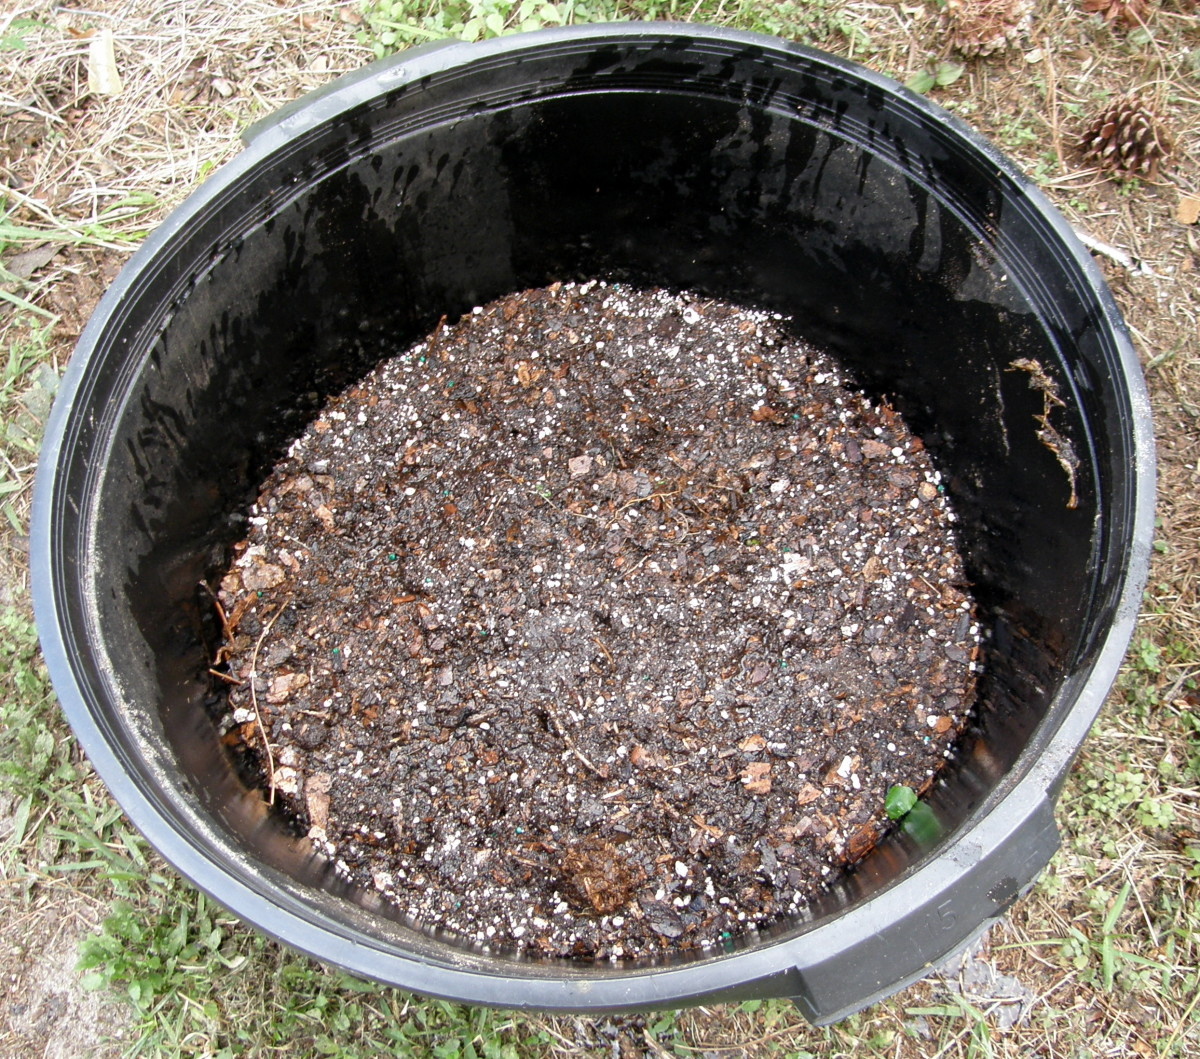 Hill up the soil to cover the seed potatoes. They need a lot of sun, so place your basket where it will get at least six to eight hours of sunlight per day.